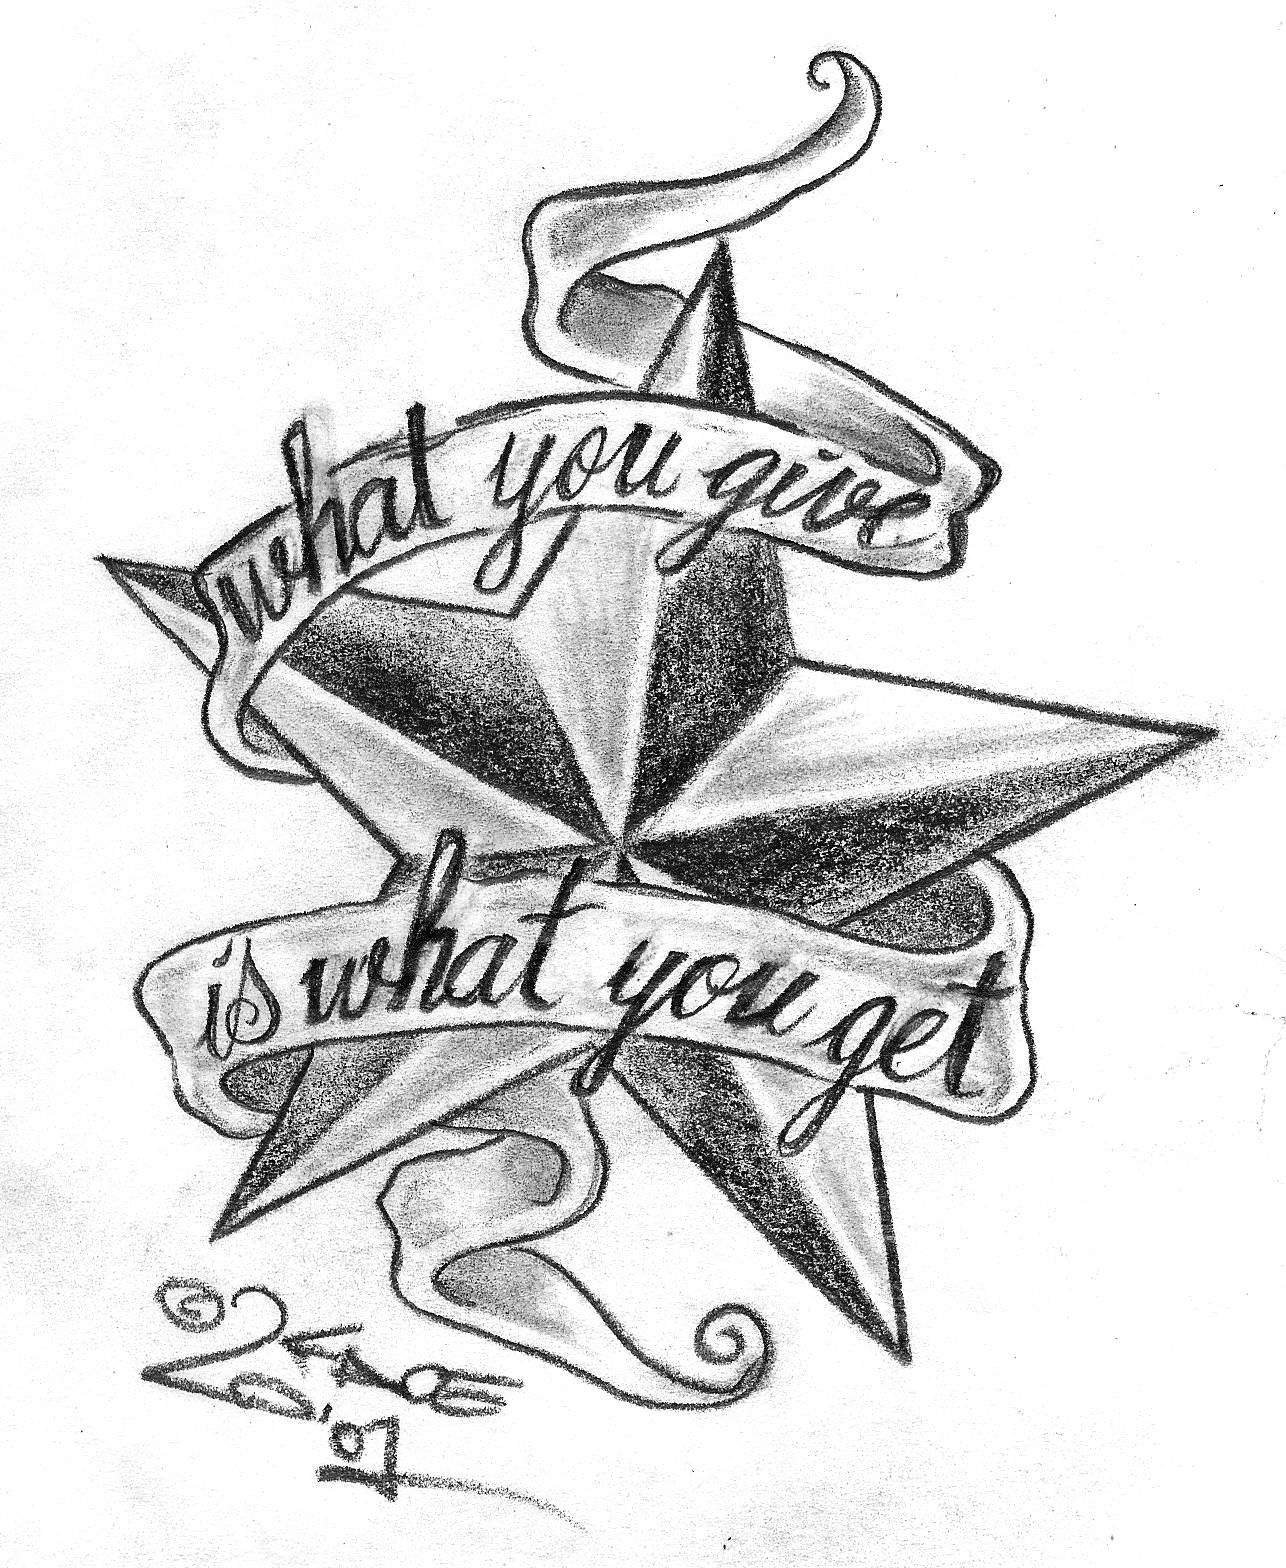 tattoo designs tattoo pictures custom tattoo designs d v tattoodonkey